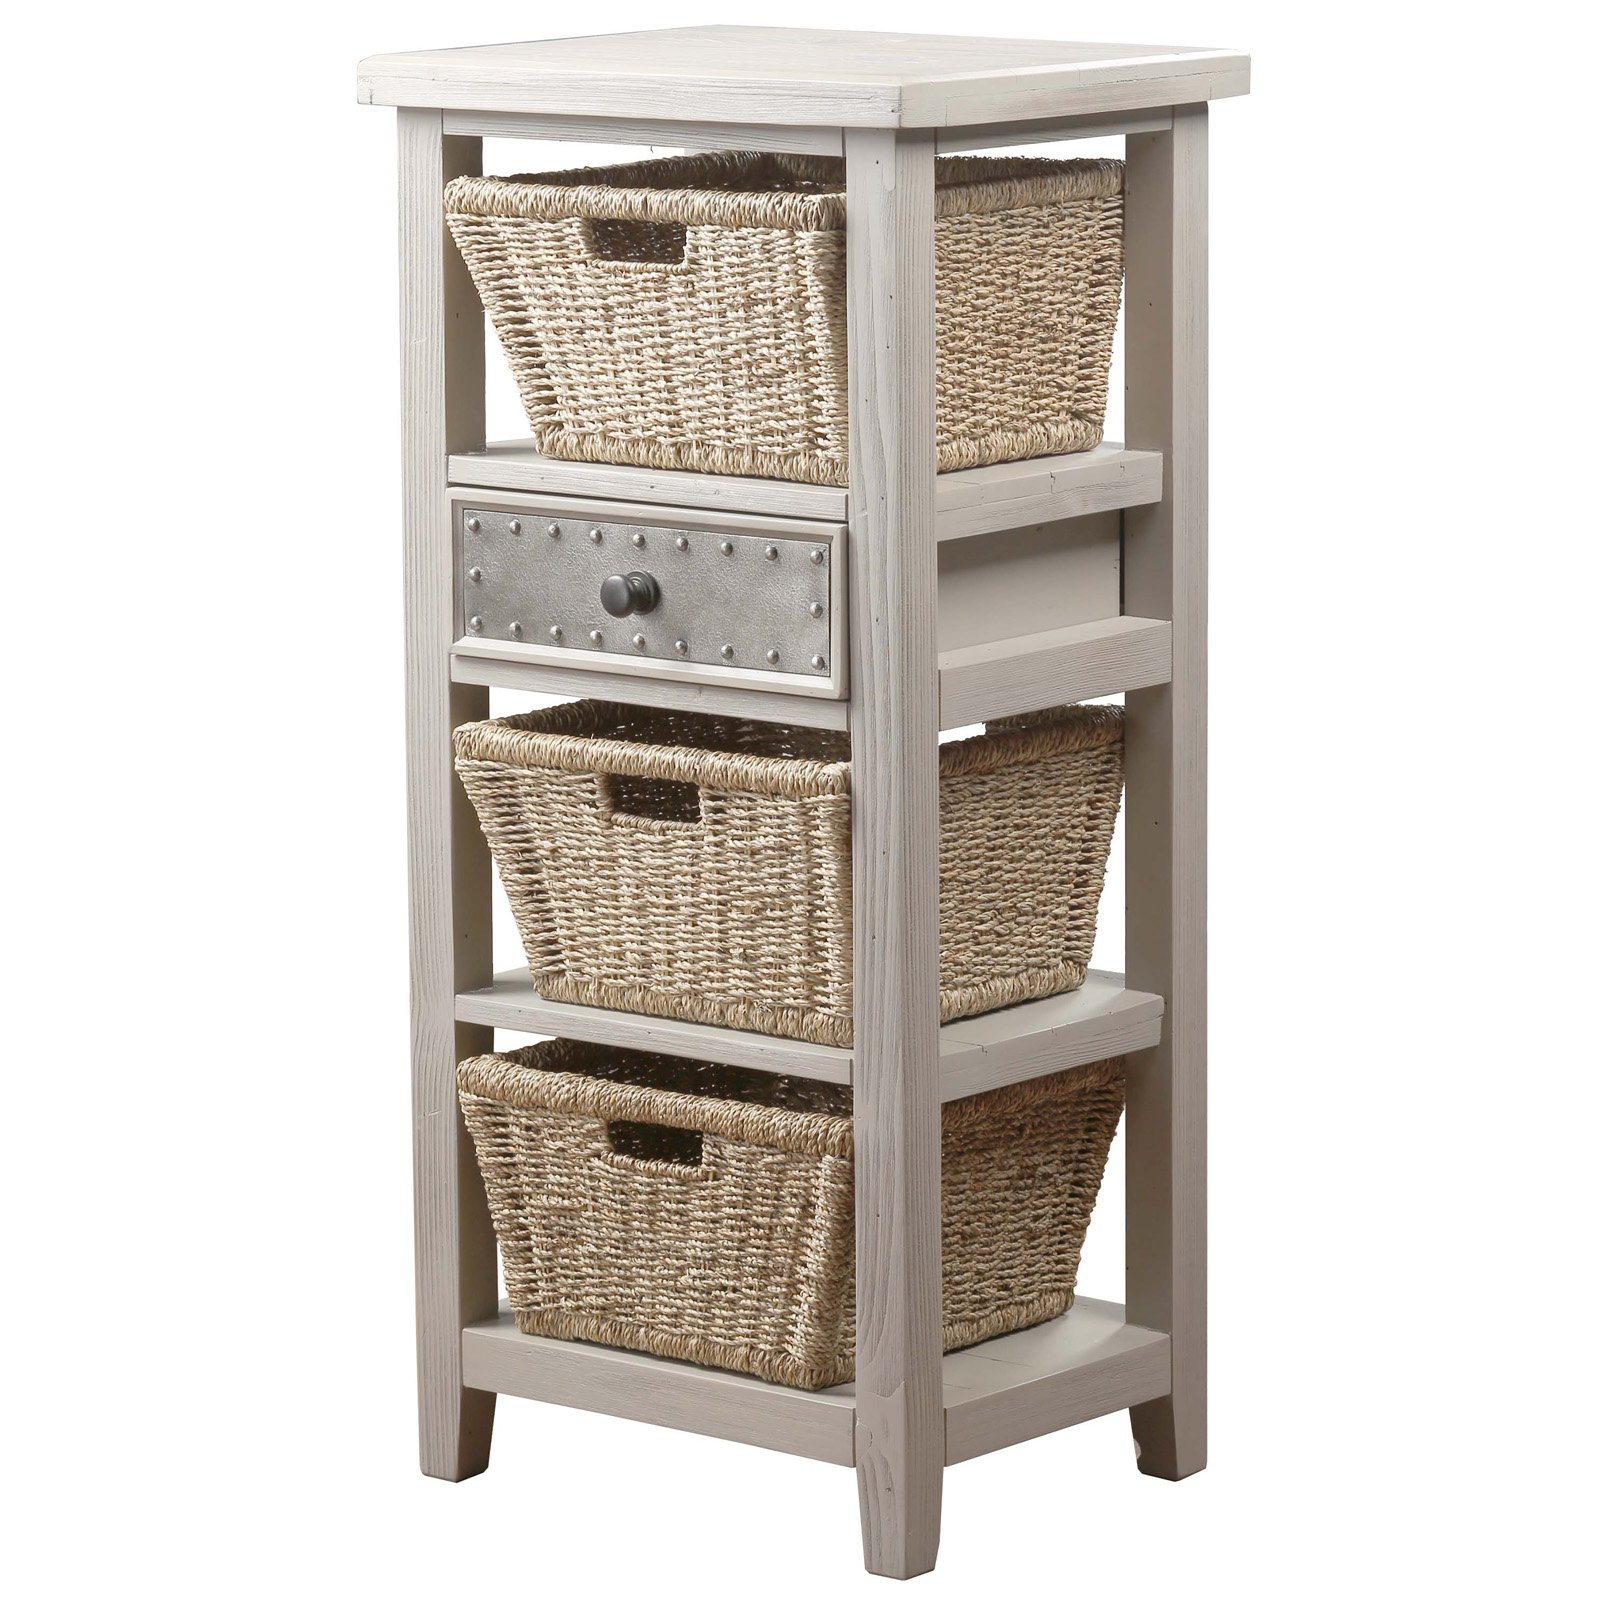 Hillsdale Furniture Tuscan Retreat Basket Stand with Three (3) Baskets, Multiple Colors